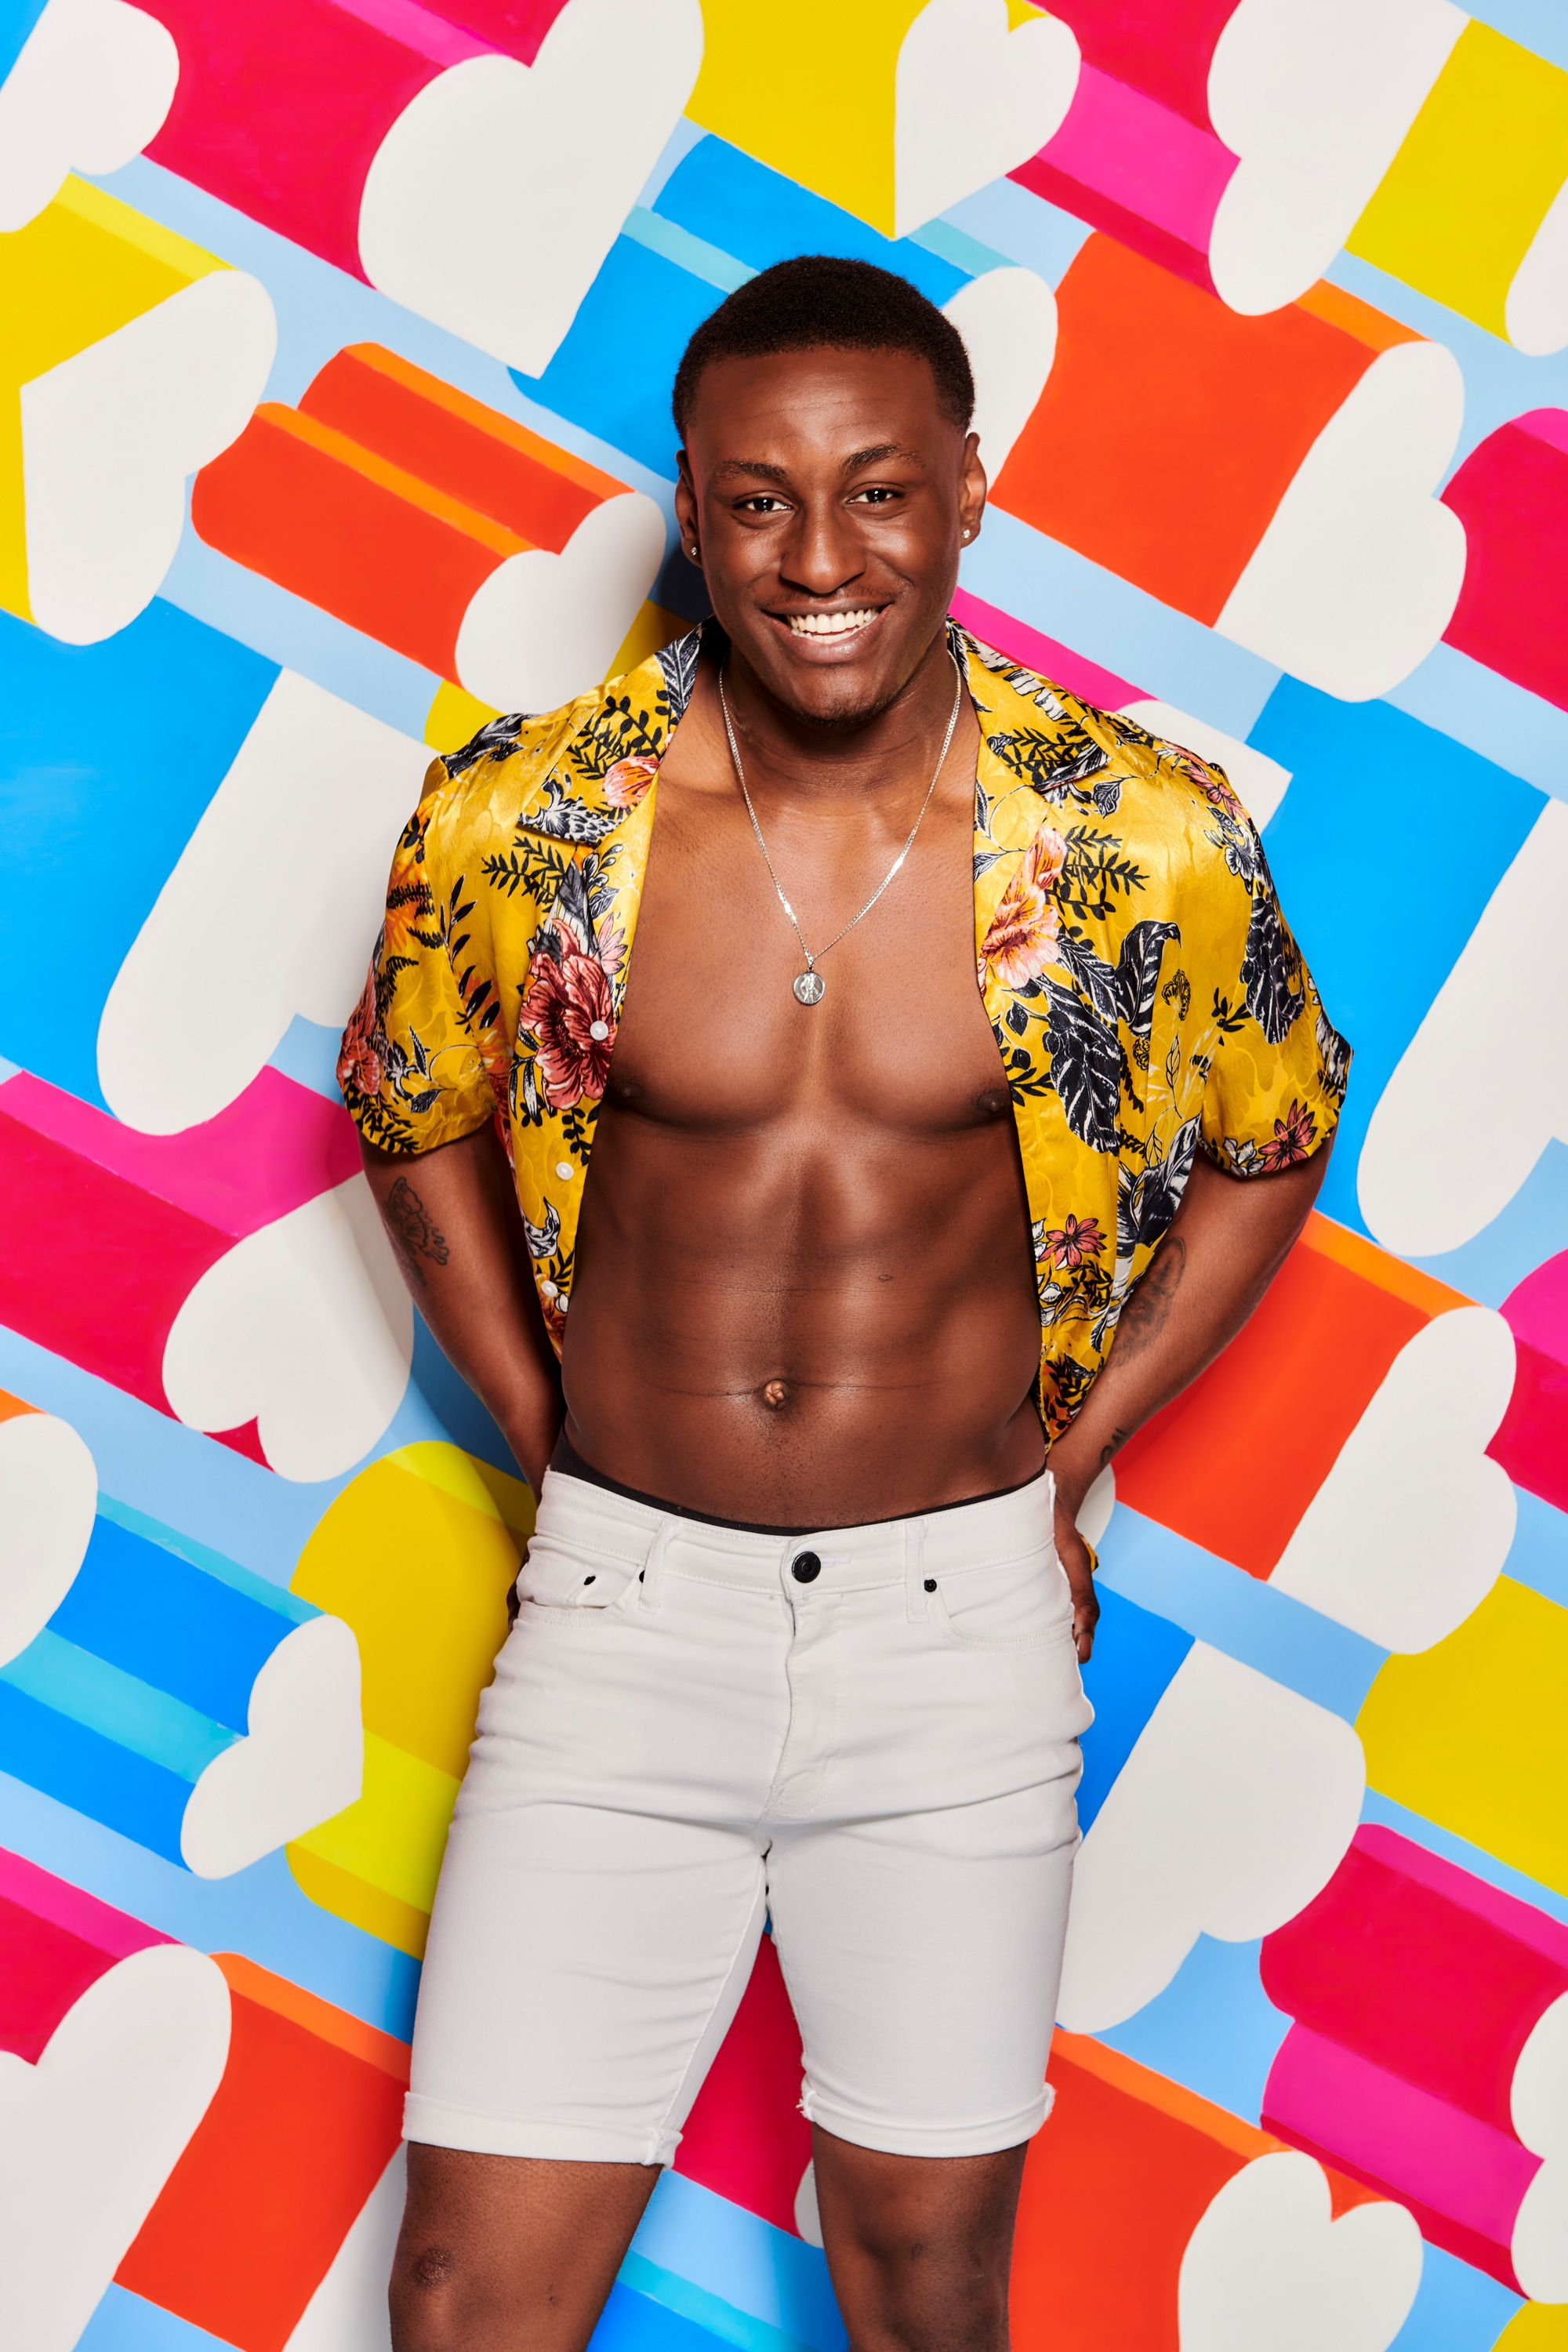 bba8881c26f1 Love Island's Sherif Lanre doesn't believe Molly-Mae Hague complained about  kick that caused his exit